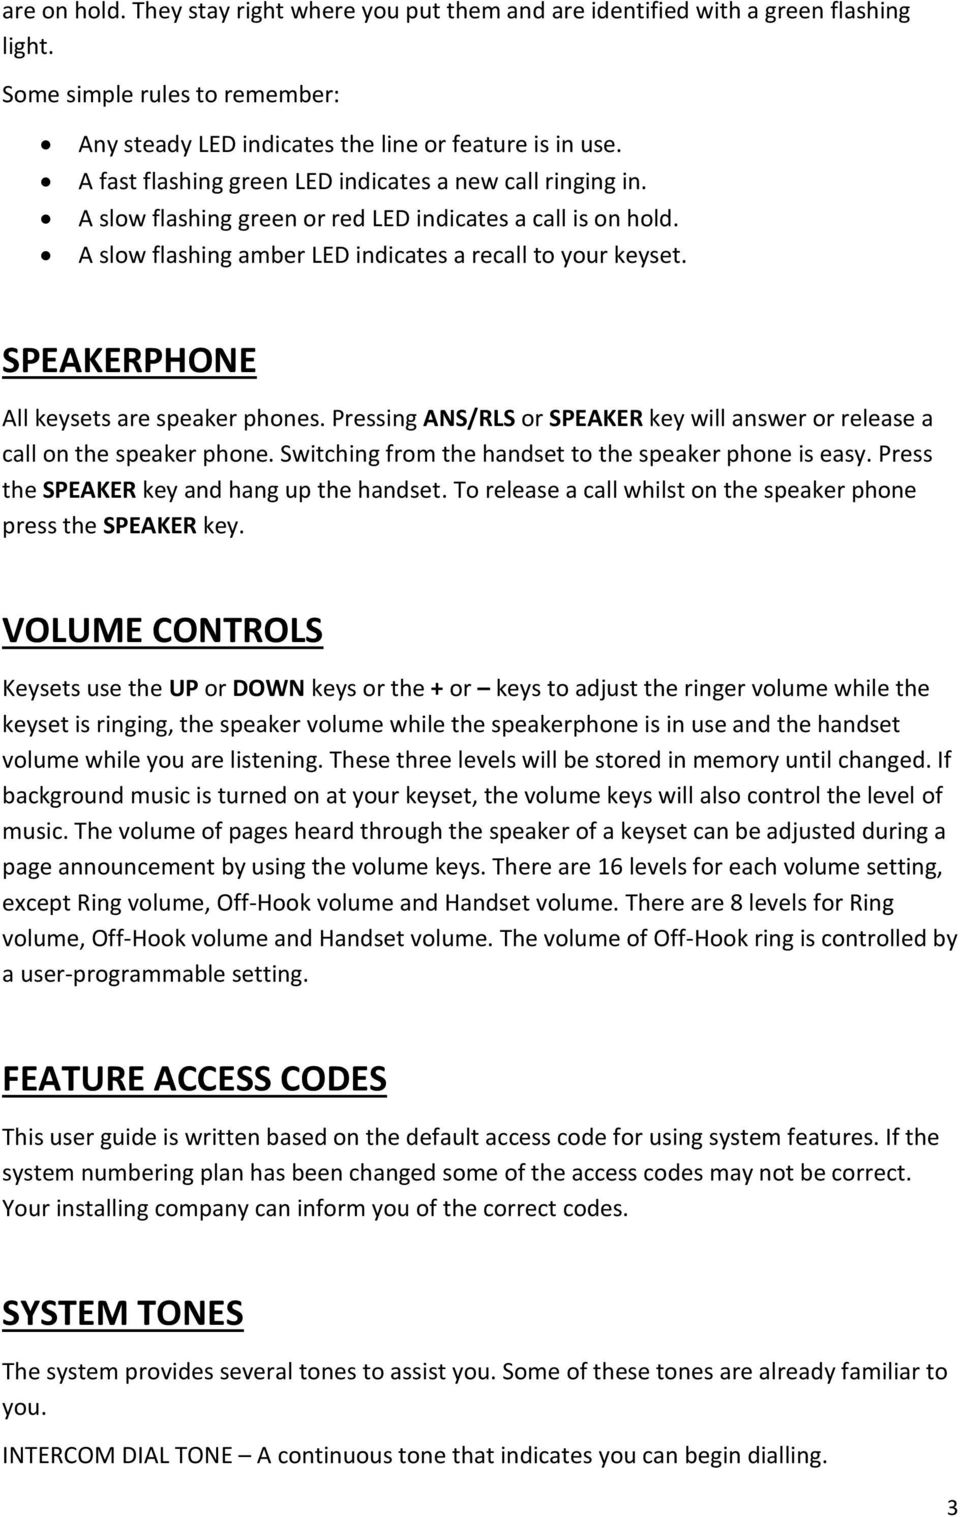 SPEAKERPHONE All keysets are speaker phones. Pressing ANS/RLS or SPEAKER key will answer or release a call on the speaker phone. Switching from the handset to the speaker phone is easy.